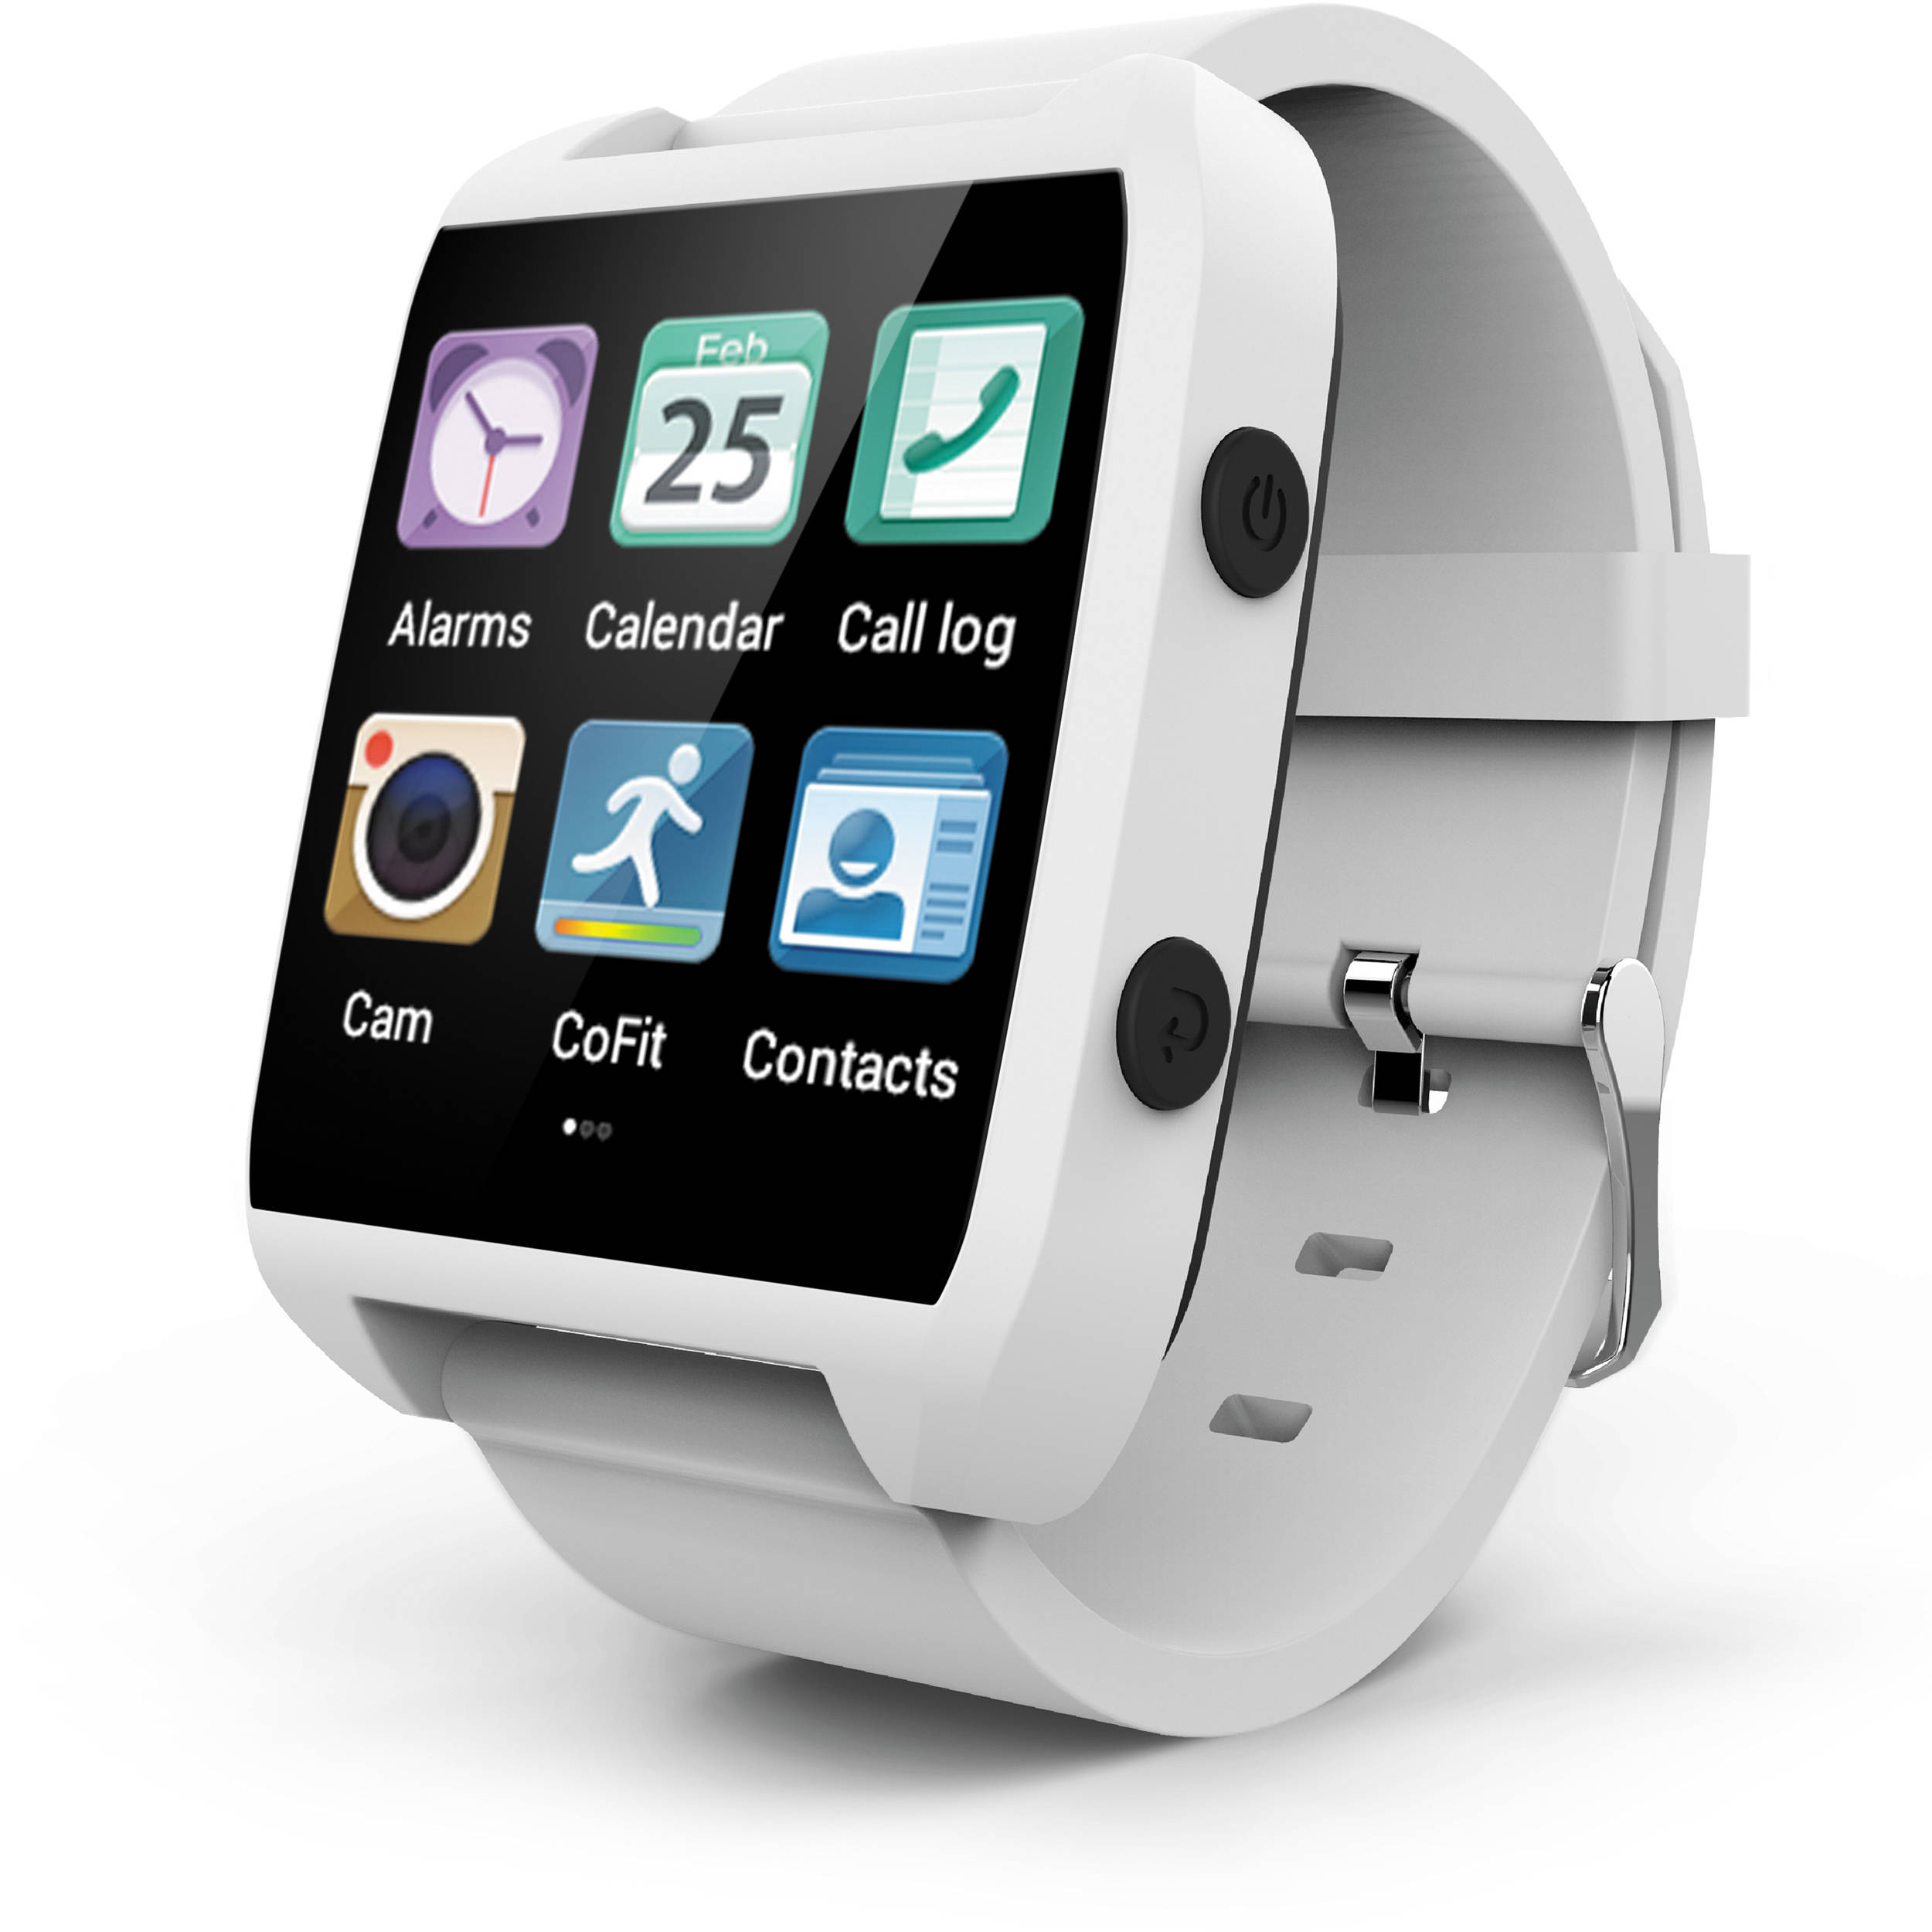 largest buddy with smartwatch learn smartwatches five smart watches the top vea displays